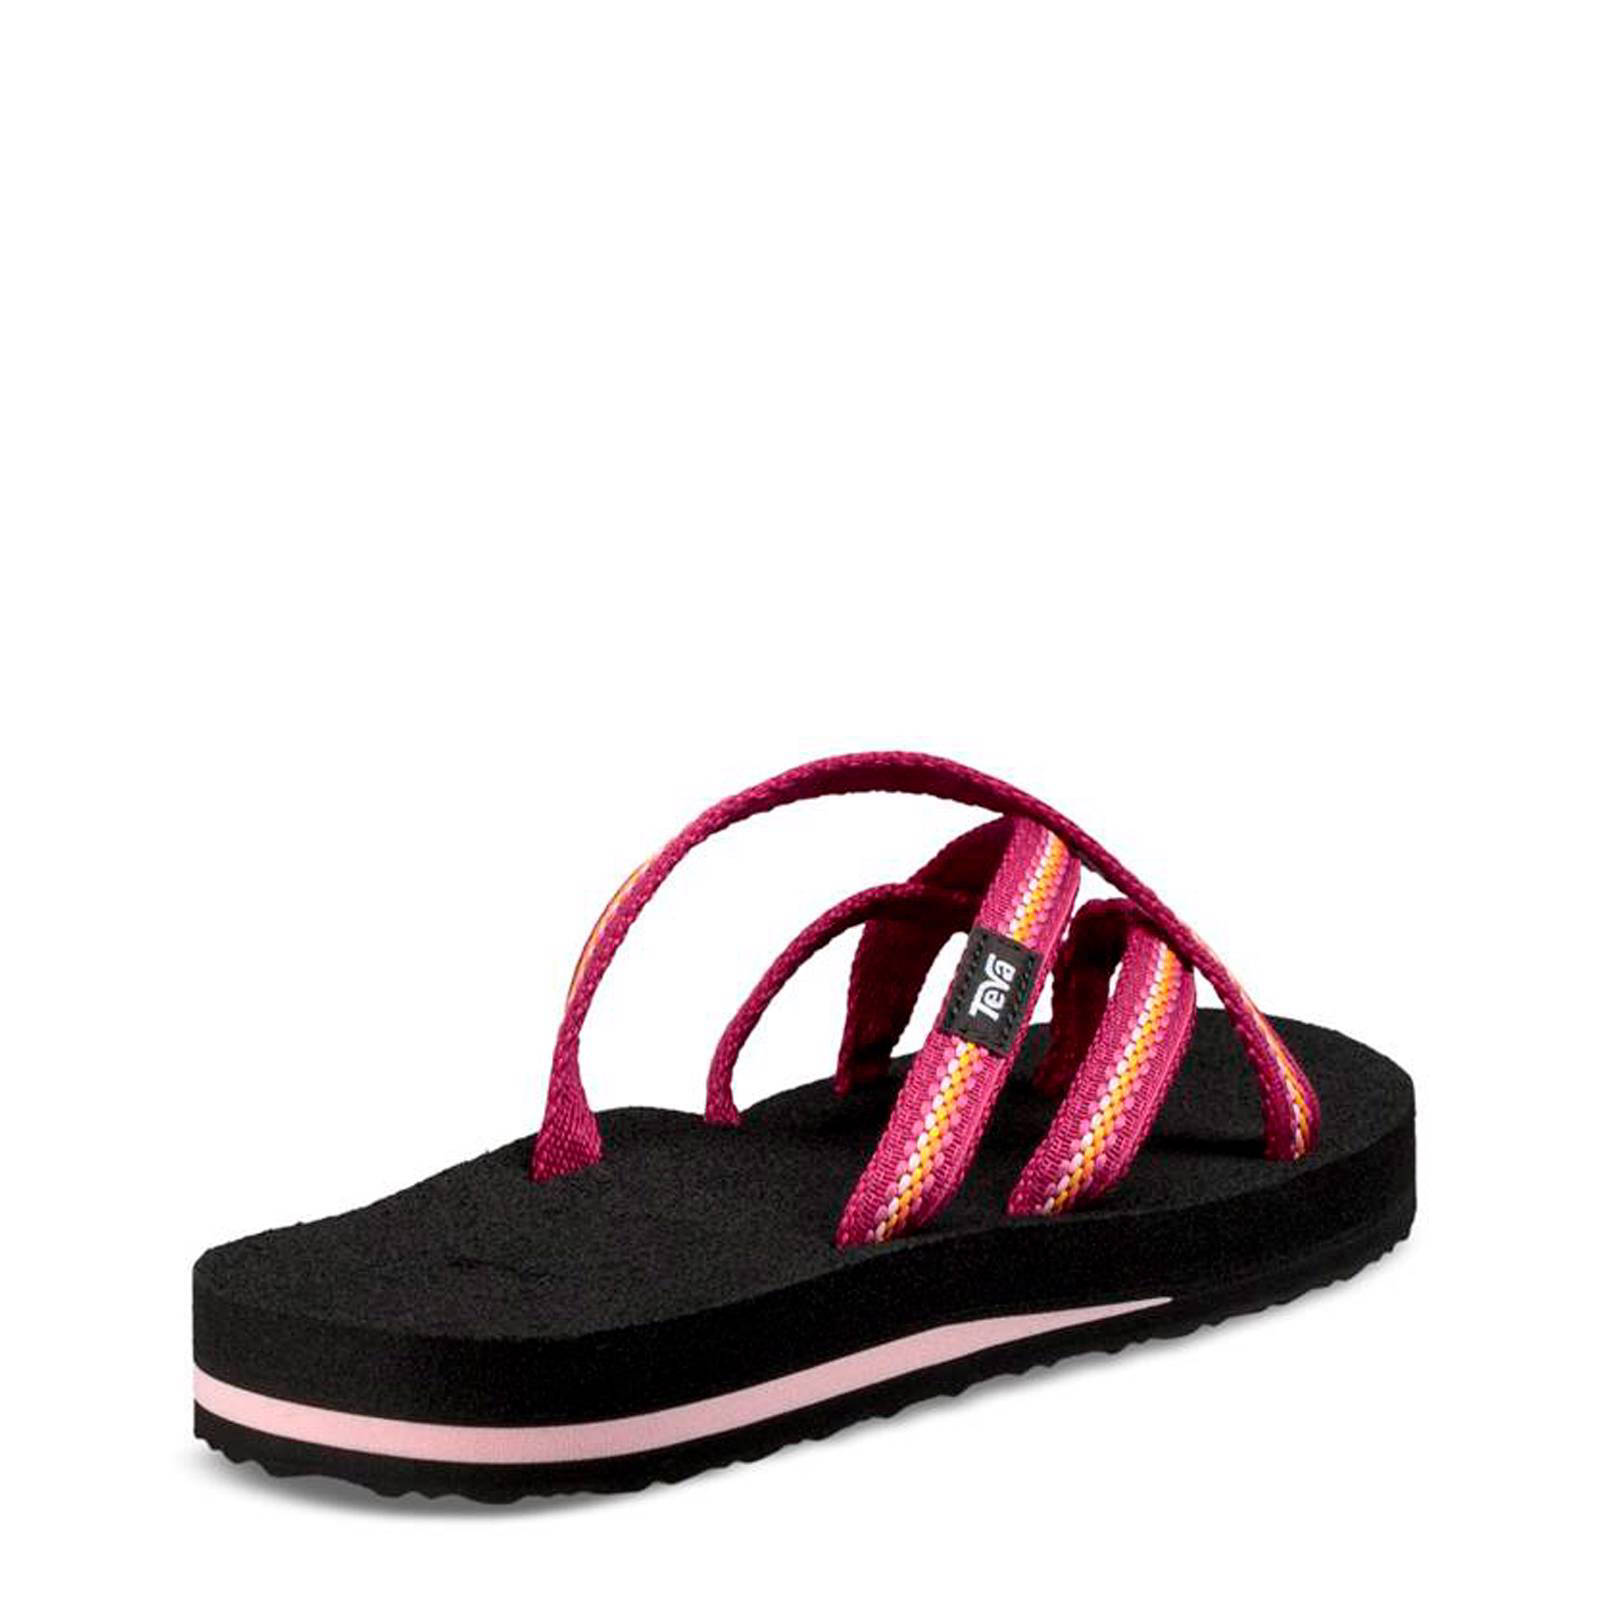 Olowahu outdoor slippers